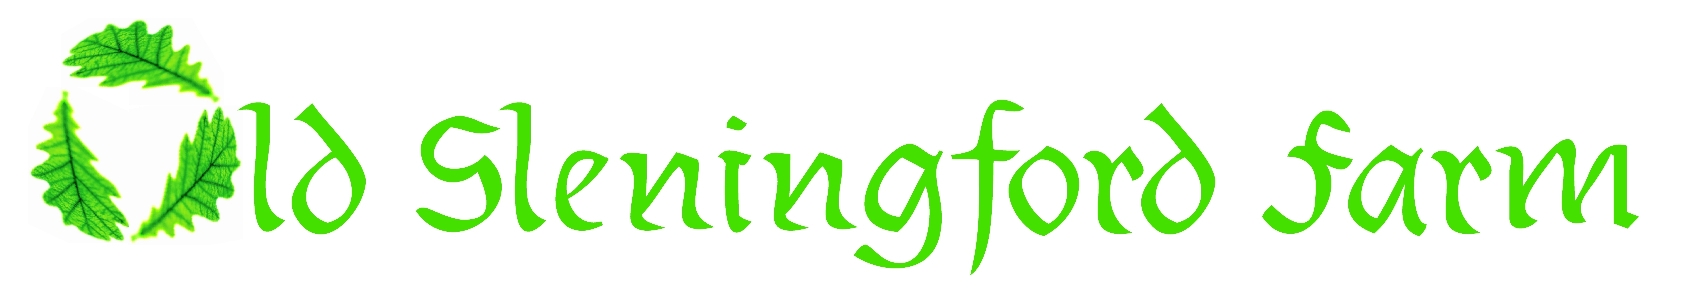 Old Sleningford Farm logo